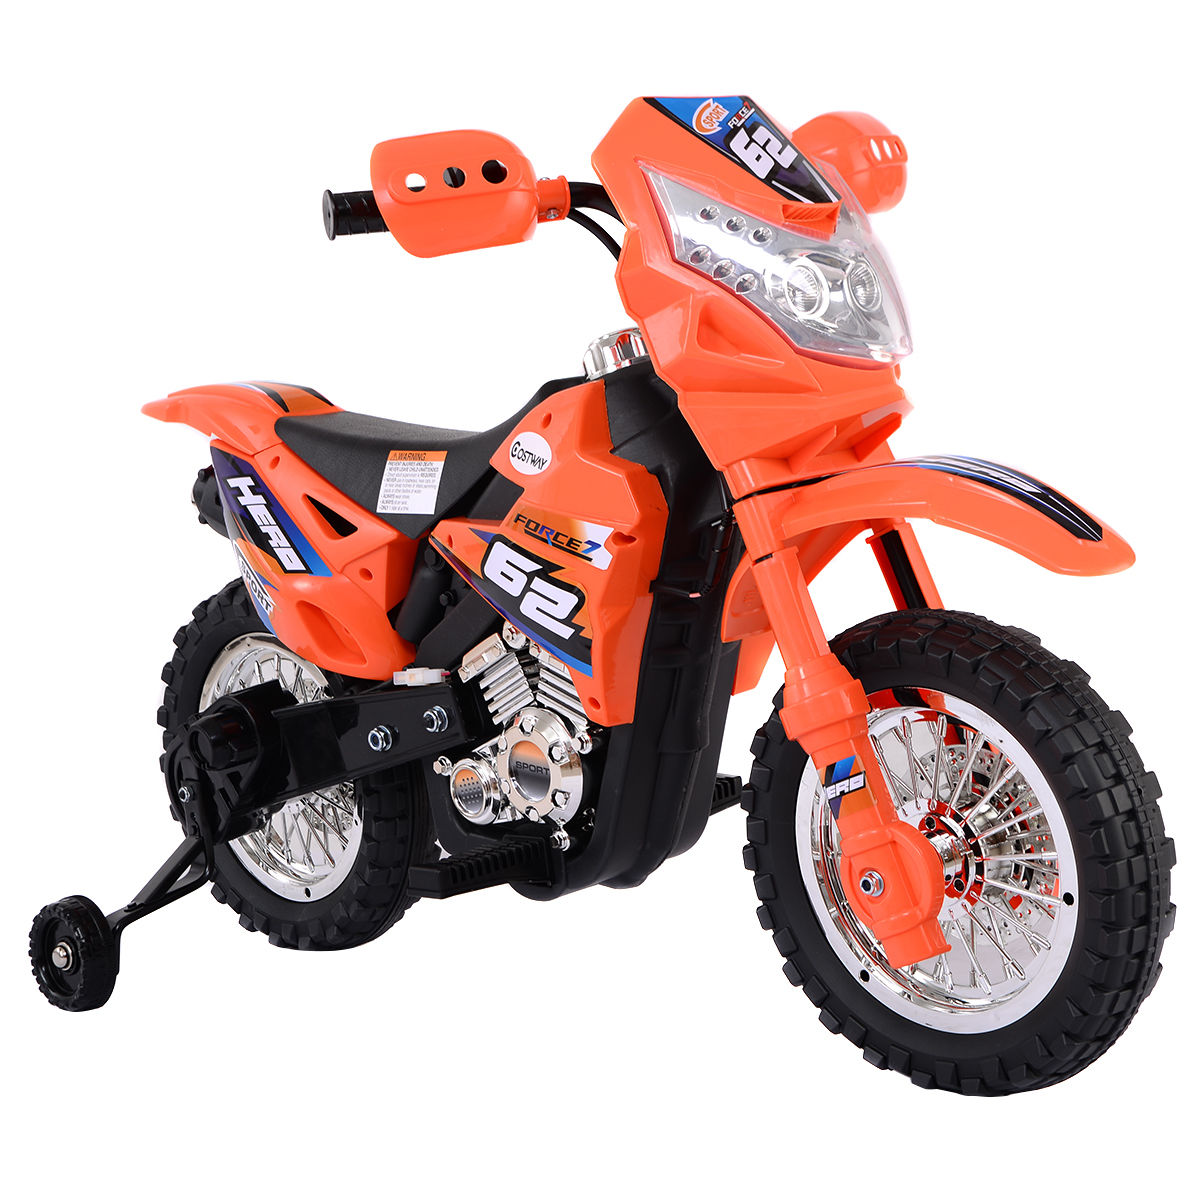 Goplus Kids Ride On Motorcycle with Training Wheel 6V Battery Powered Electric Toy by Costway